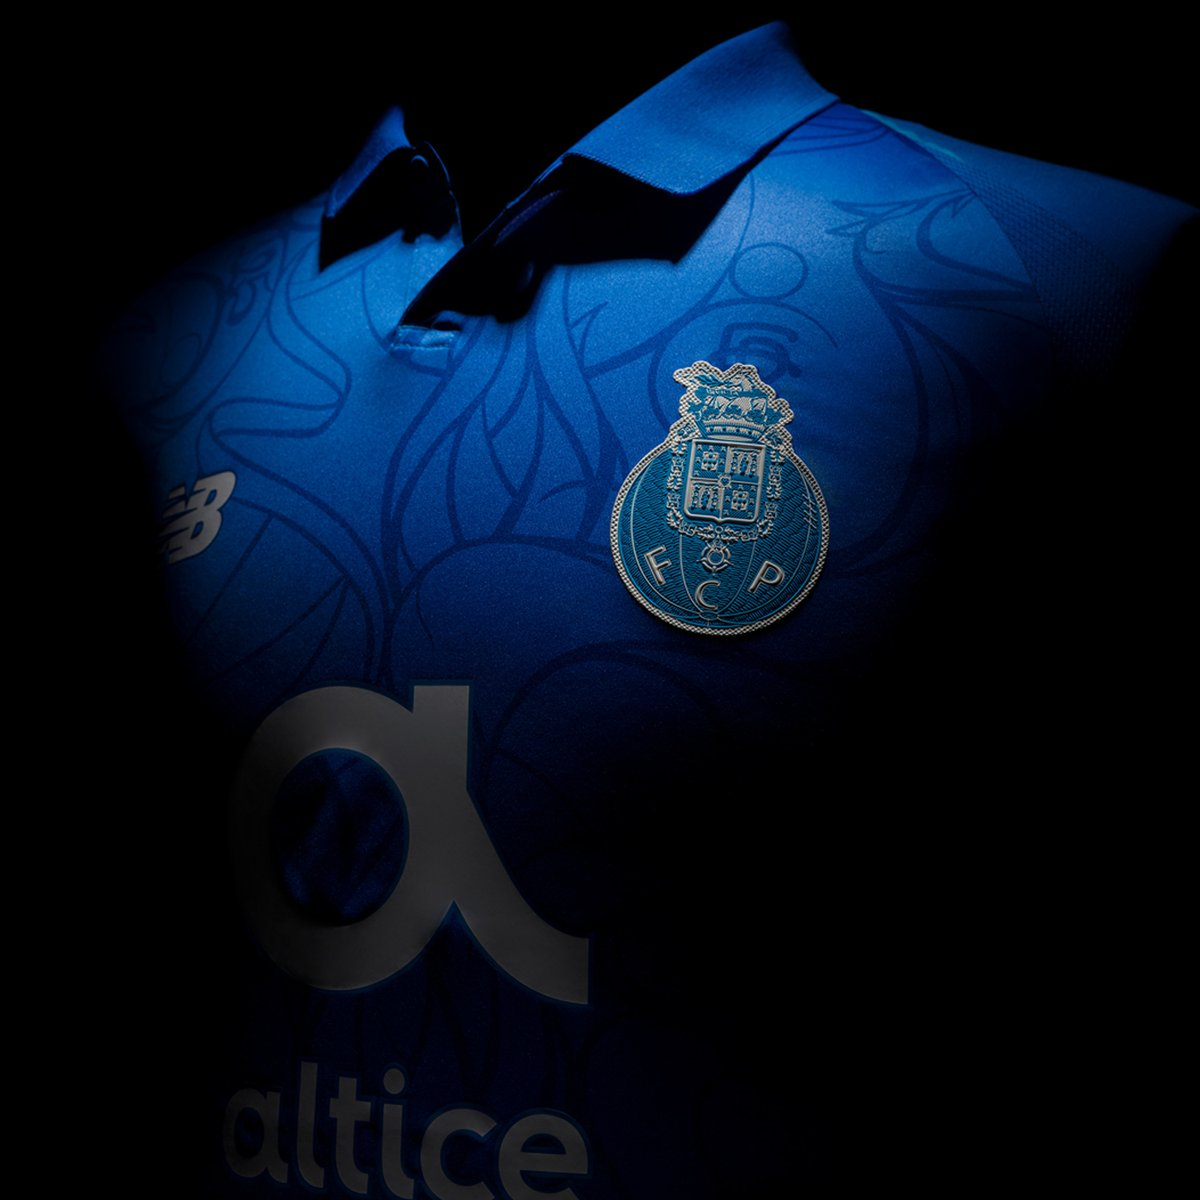 "65c2733c7 FC Porto player Sergio Oliveira said: ""Everything about this kit looks  fantastic. You can really see the effort that has gone into making sure we  celebrate ..."